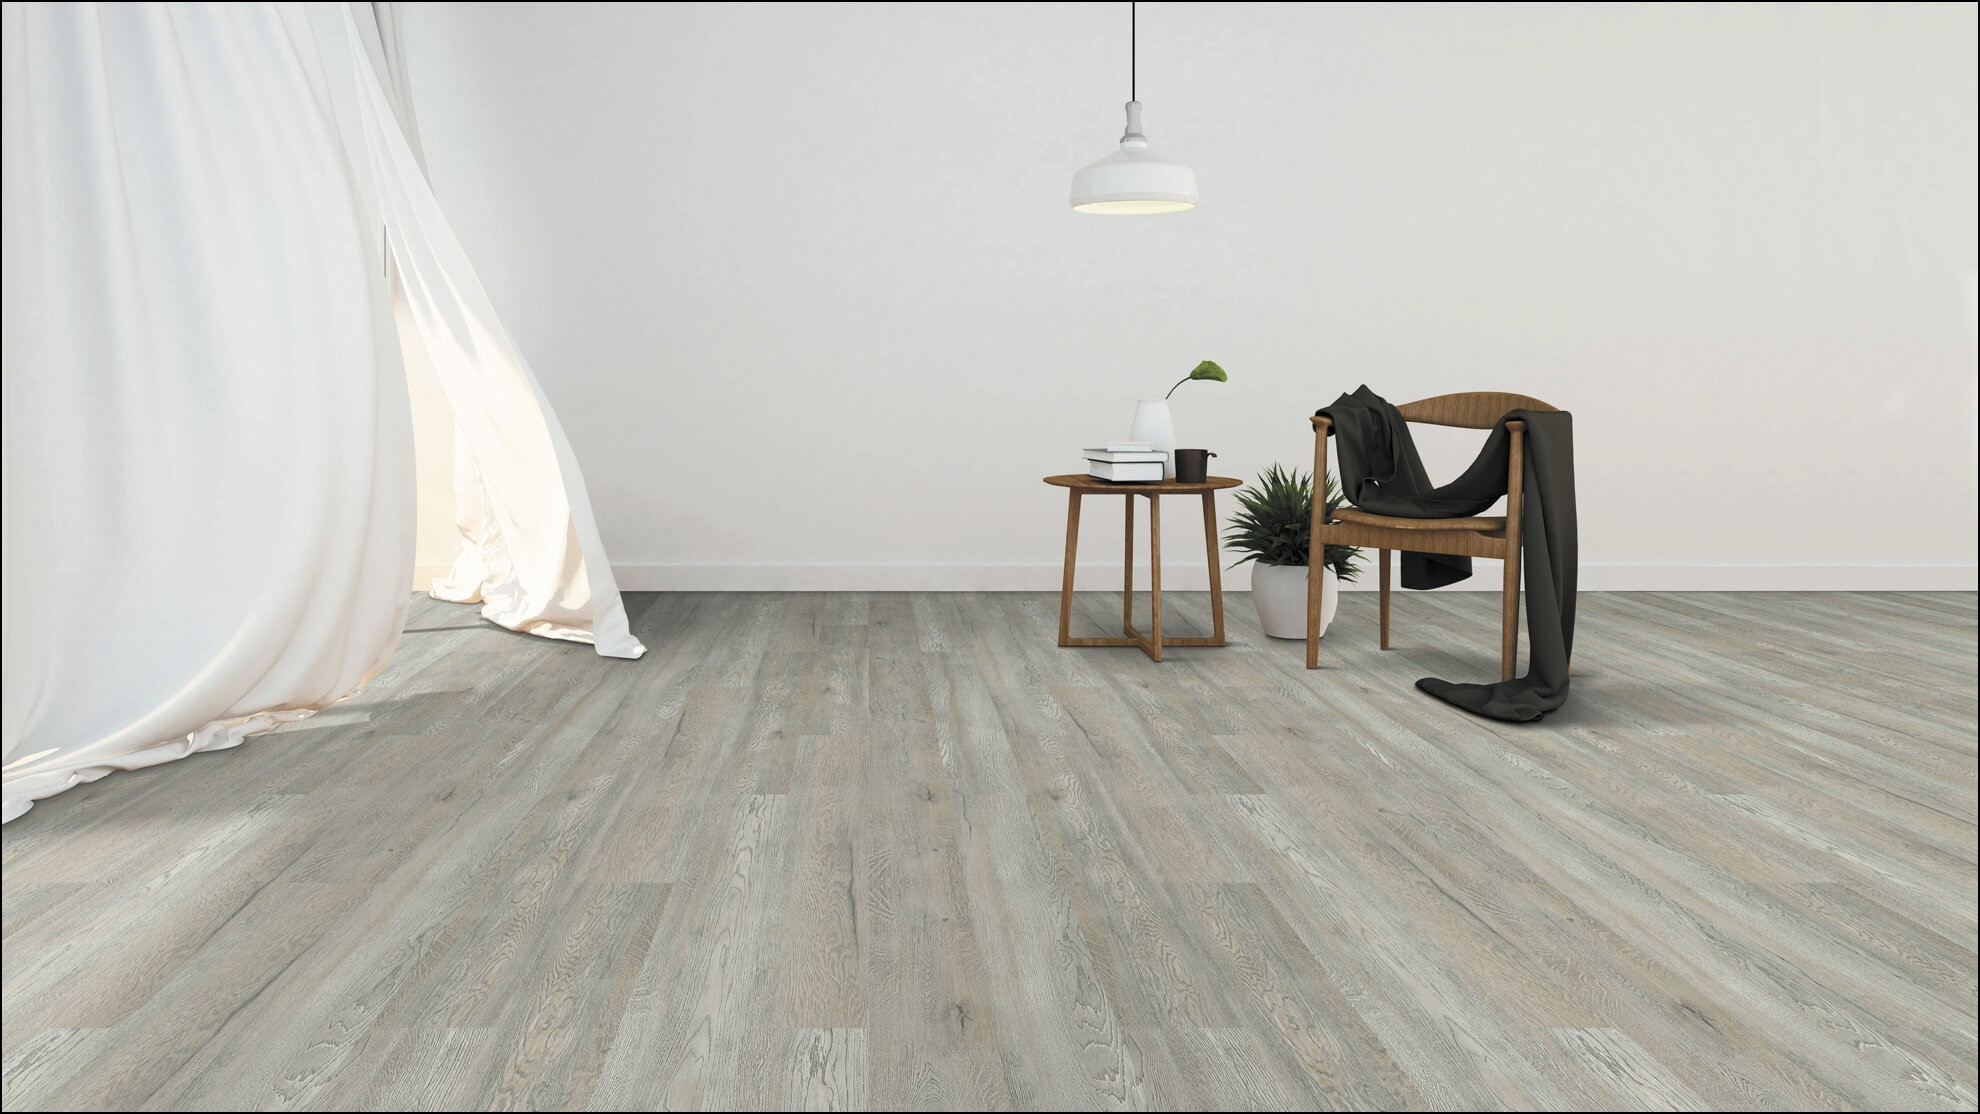 Manchurian Walnut Hardwood Flooring Of Hardwood Flooring Suppliers France Flooring Ideas within Hardwood Flooring Installation San Diego Collection Earthwerks Flooring Of Hardwood Flooring Installation San Diego